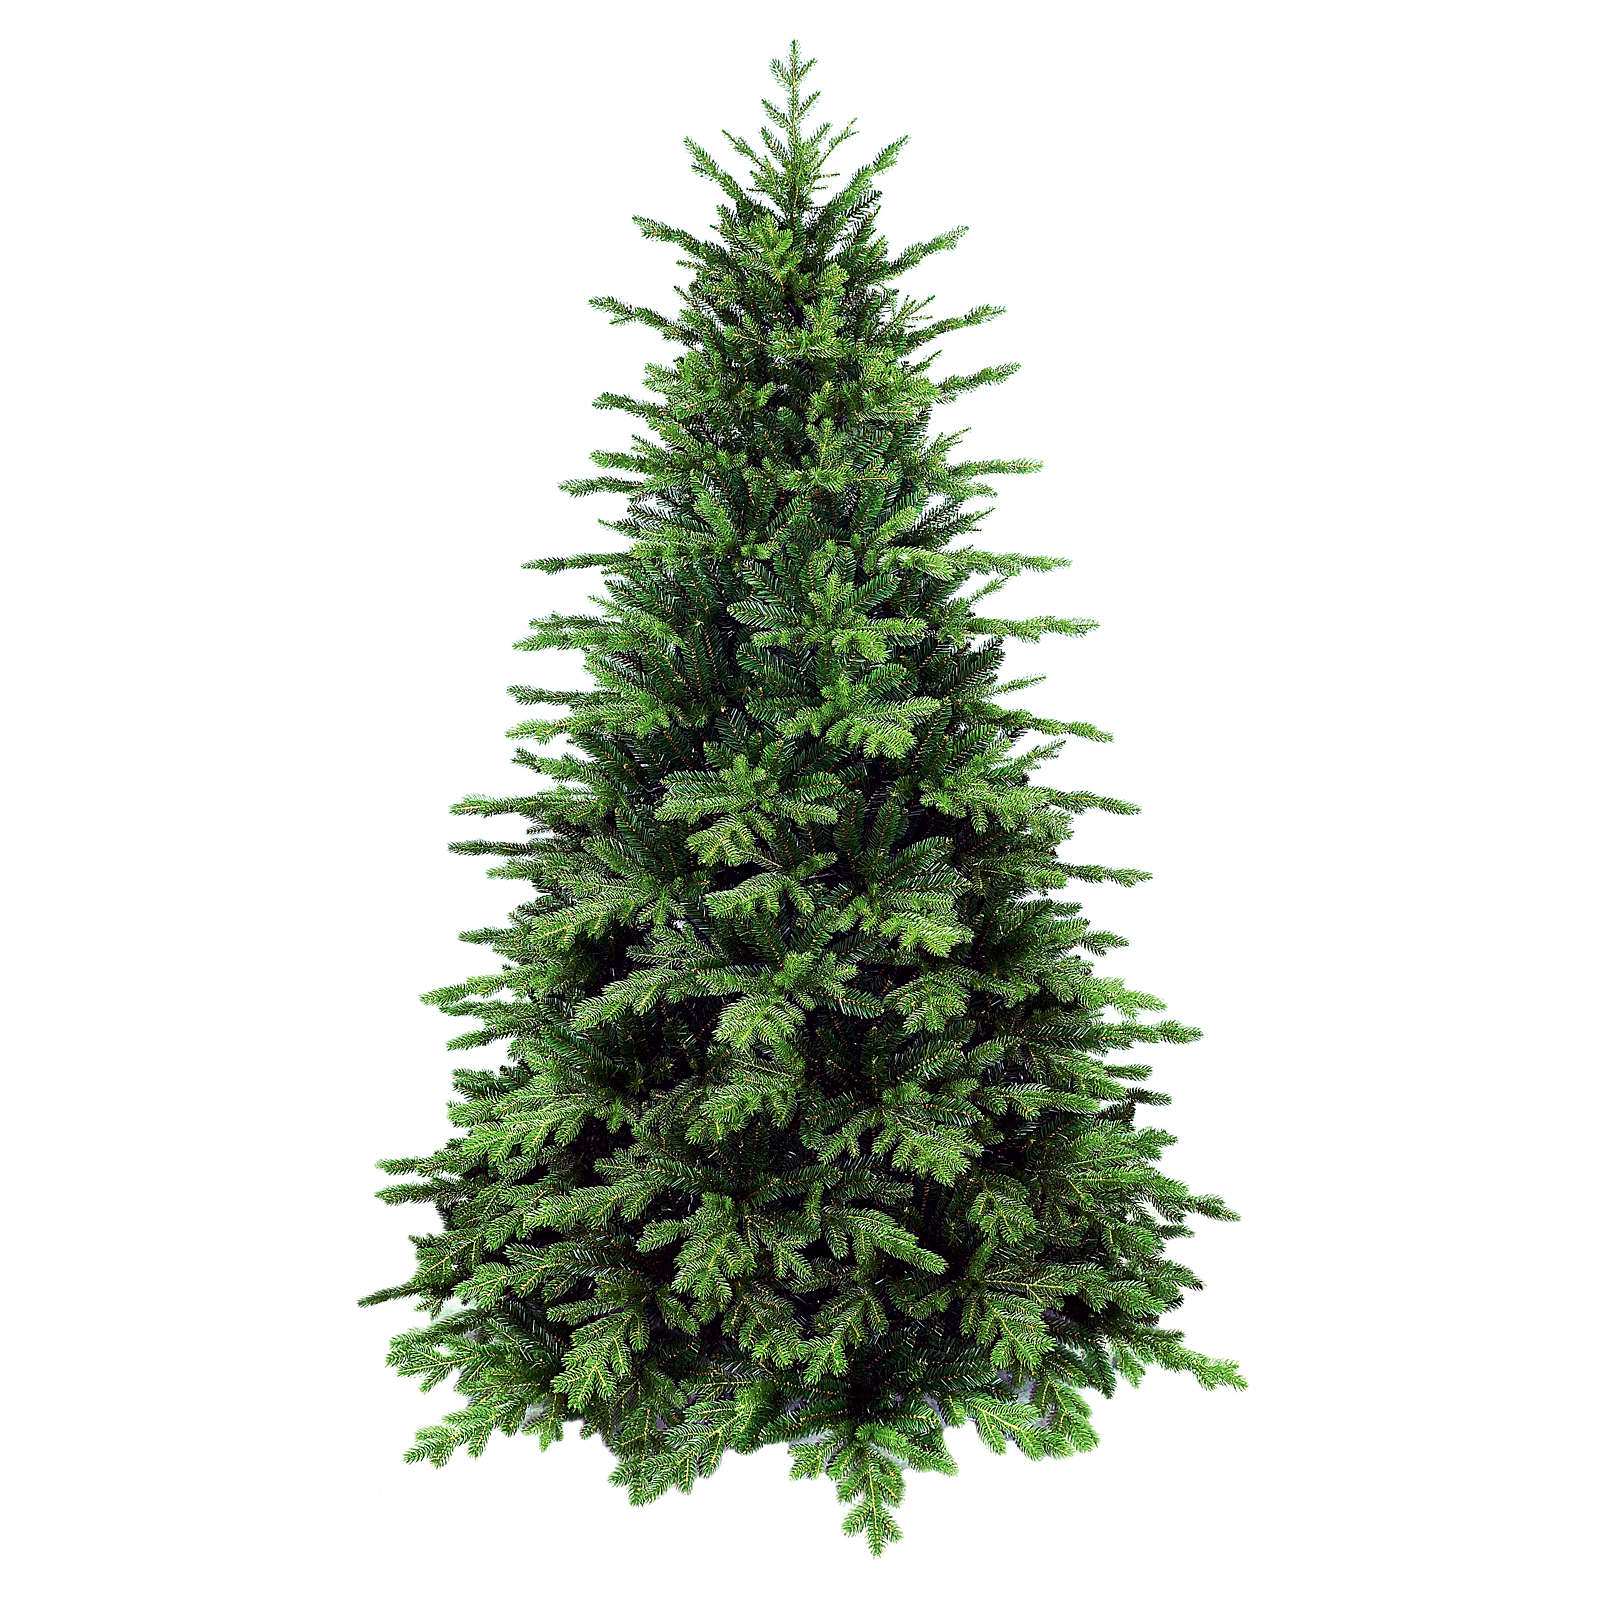 Árvore de Natal artificial 180 cm Poly verde Dunant Winter Woodland 3